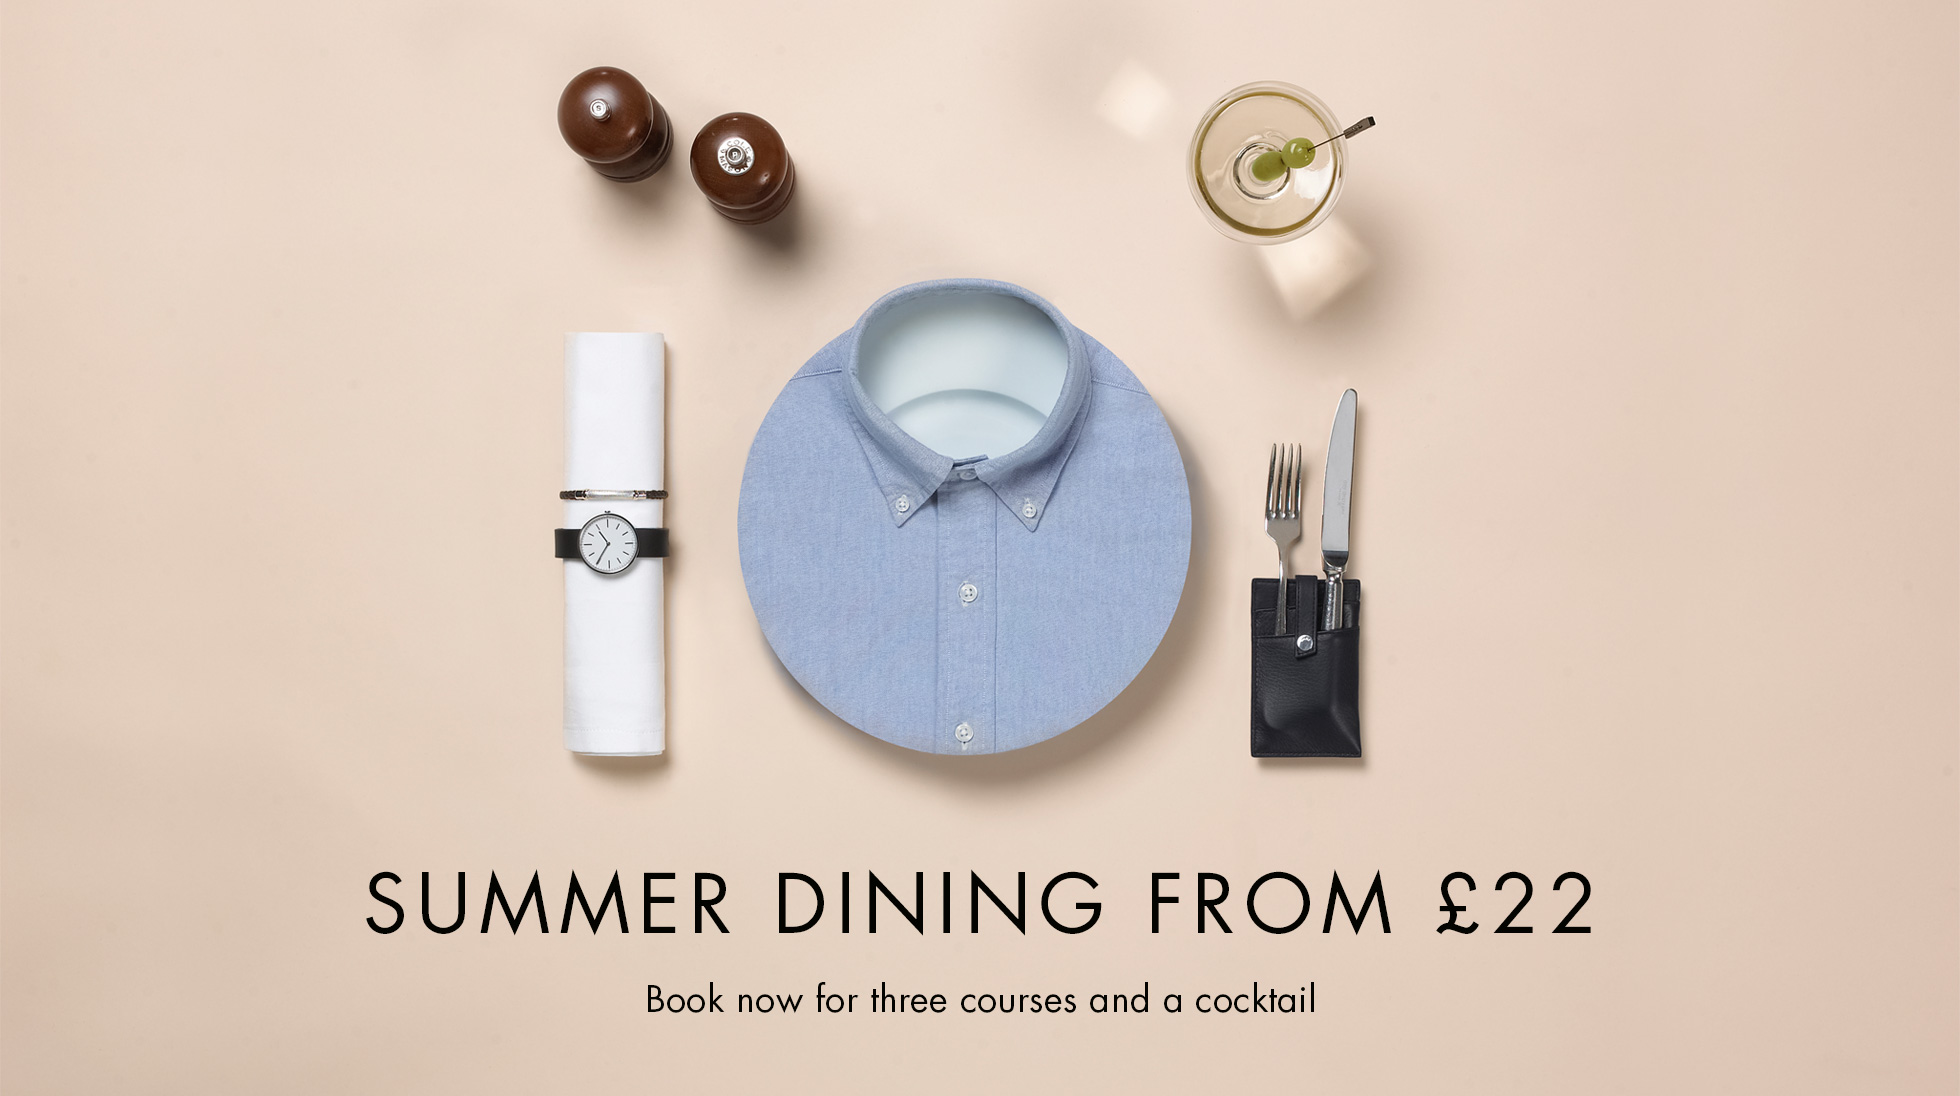 SUMMER DINING FROM £22